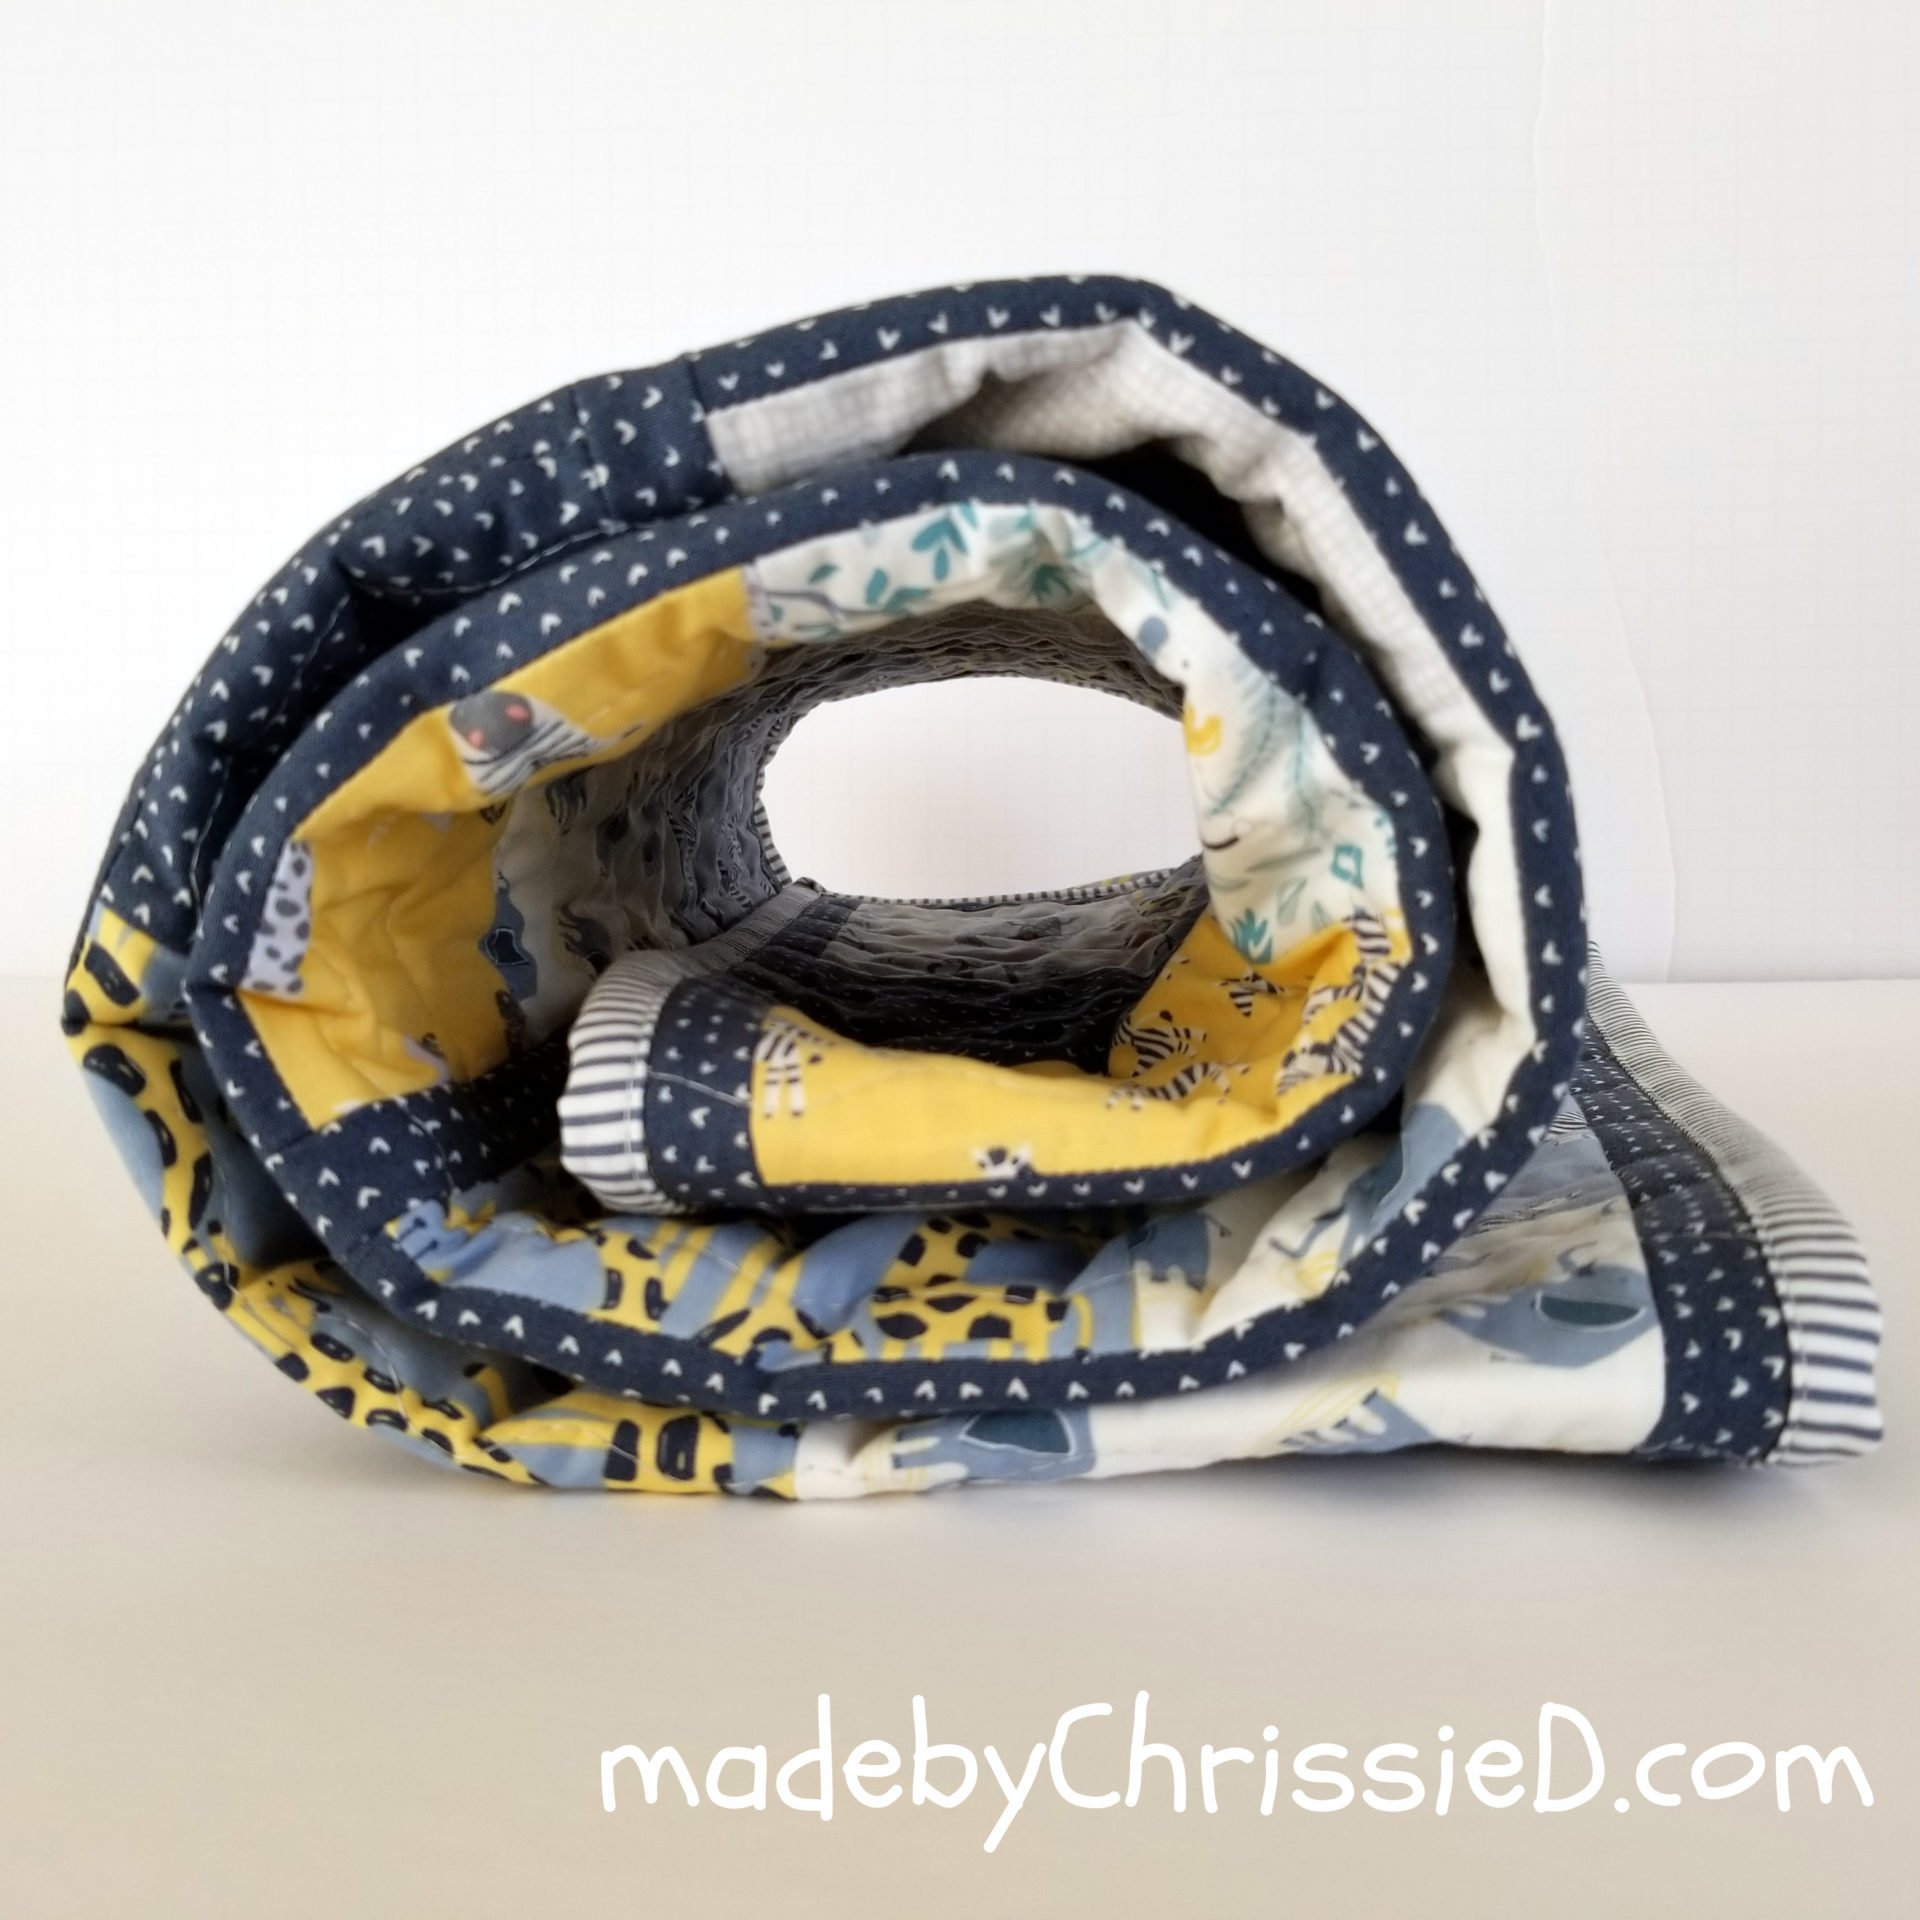 Guest Designer – Chris | Made by Chrissie D.